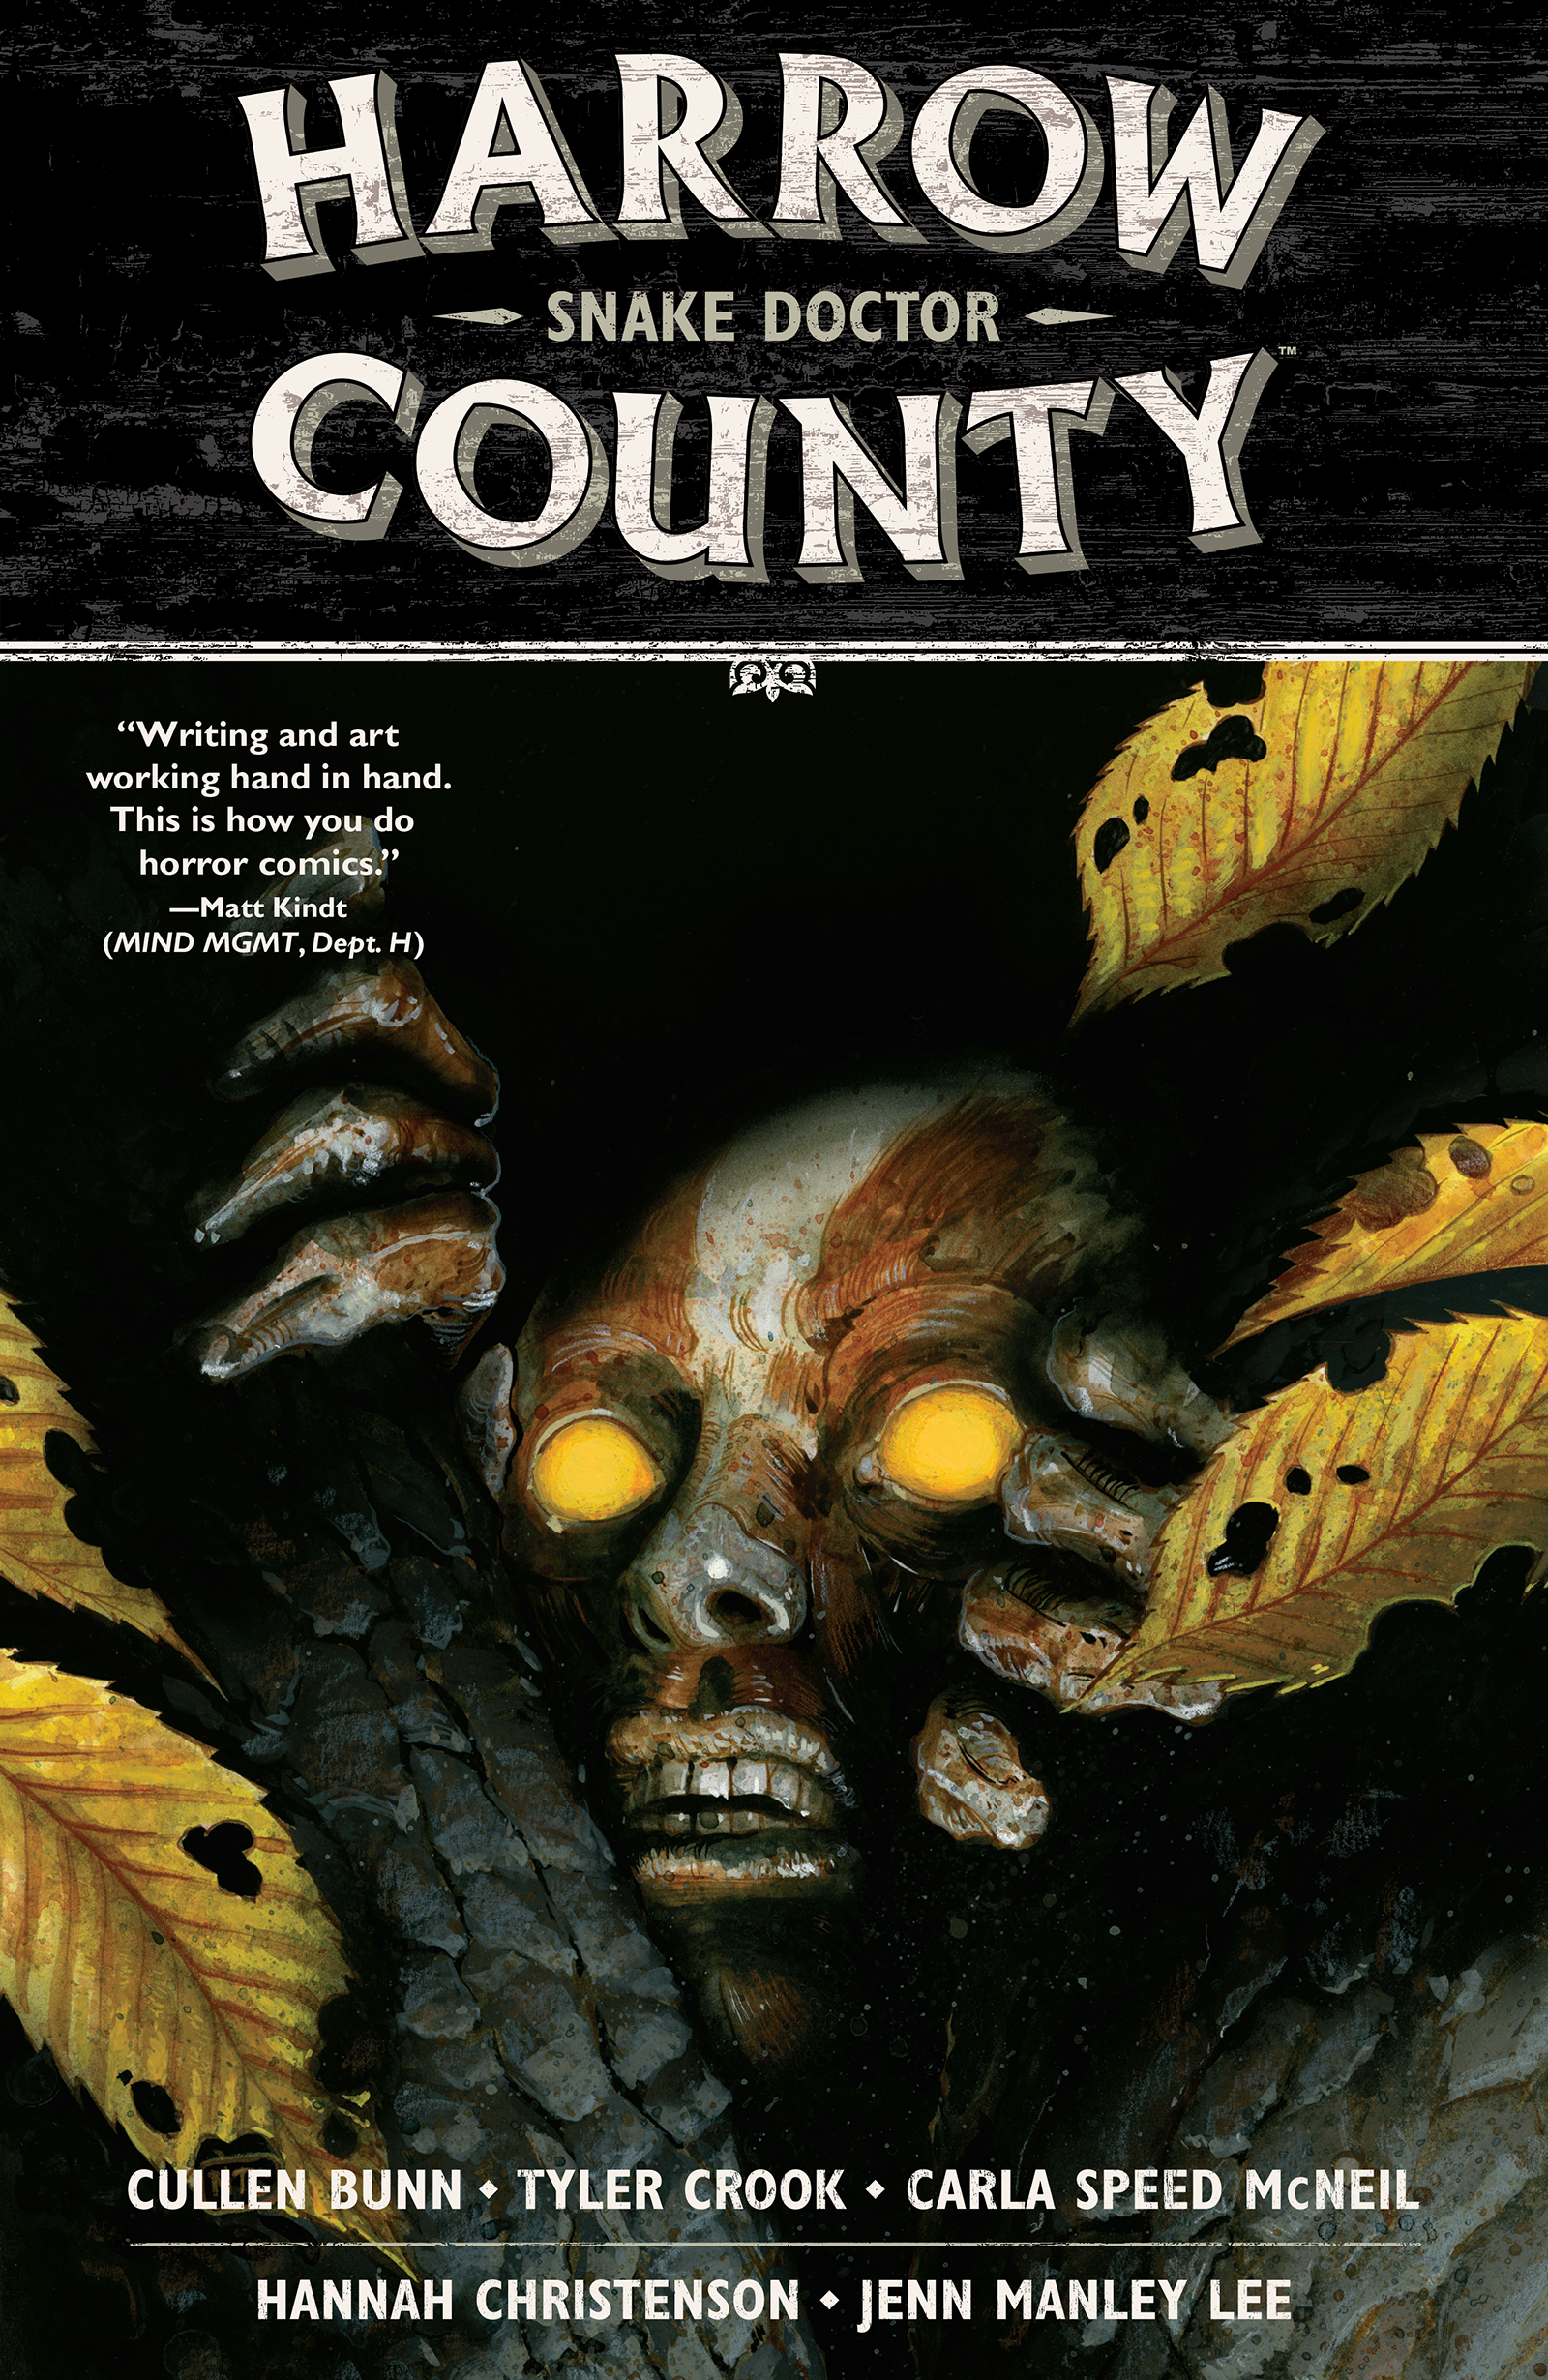 HARROW COUNTY TP VOL 03 SNAKE DOCTOR NEW PTG